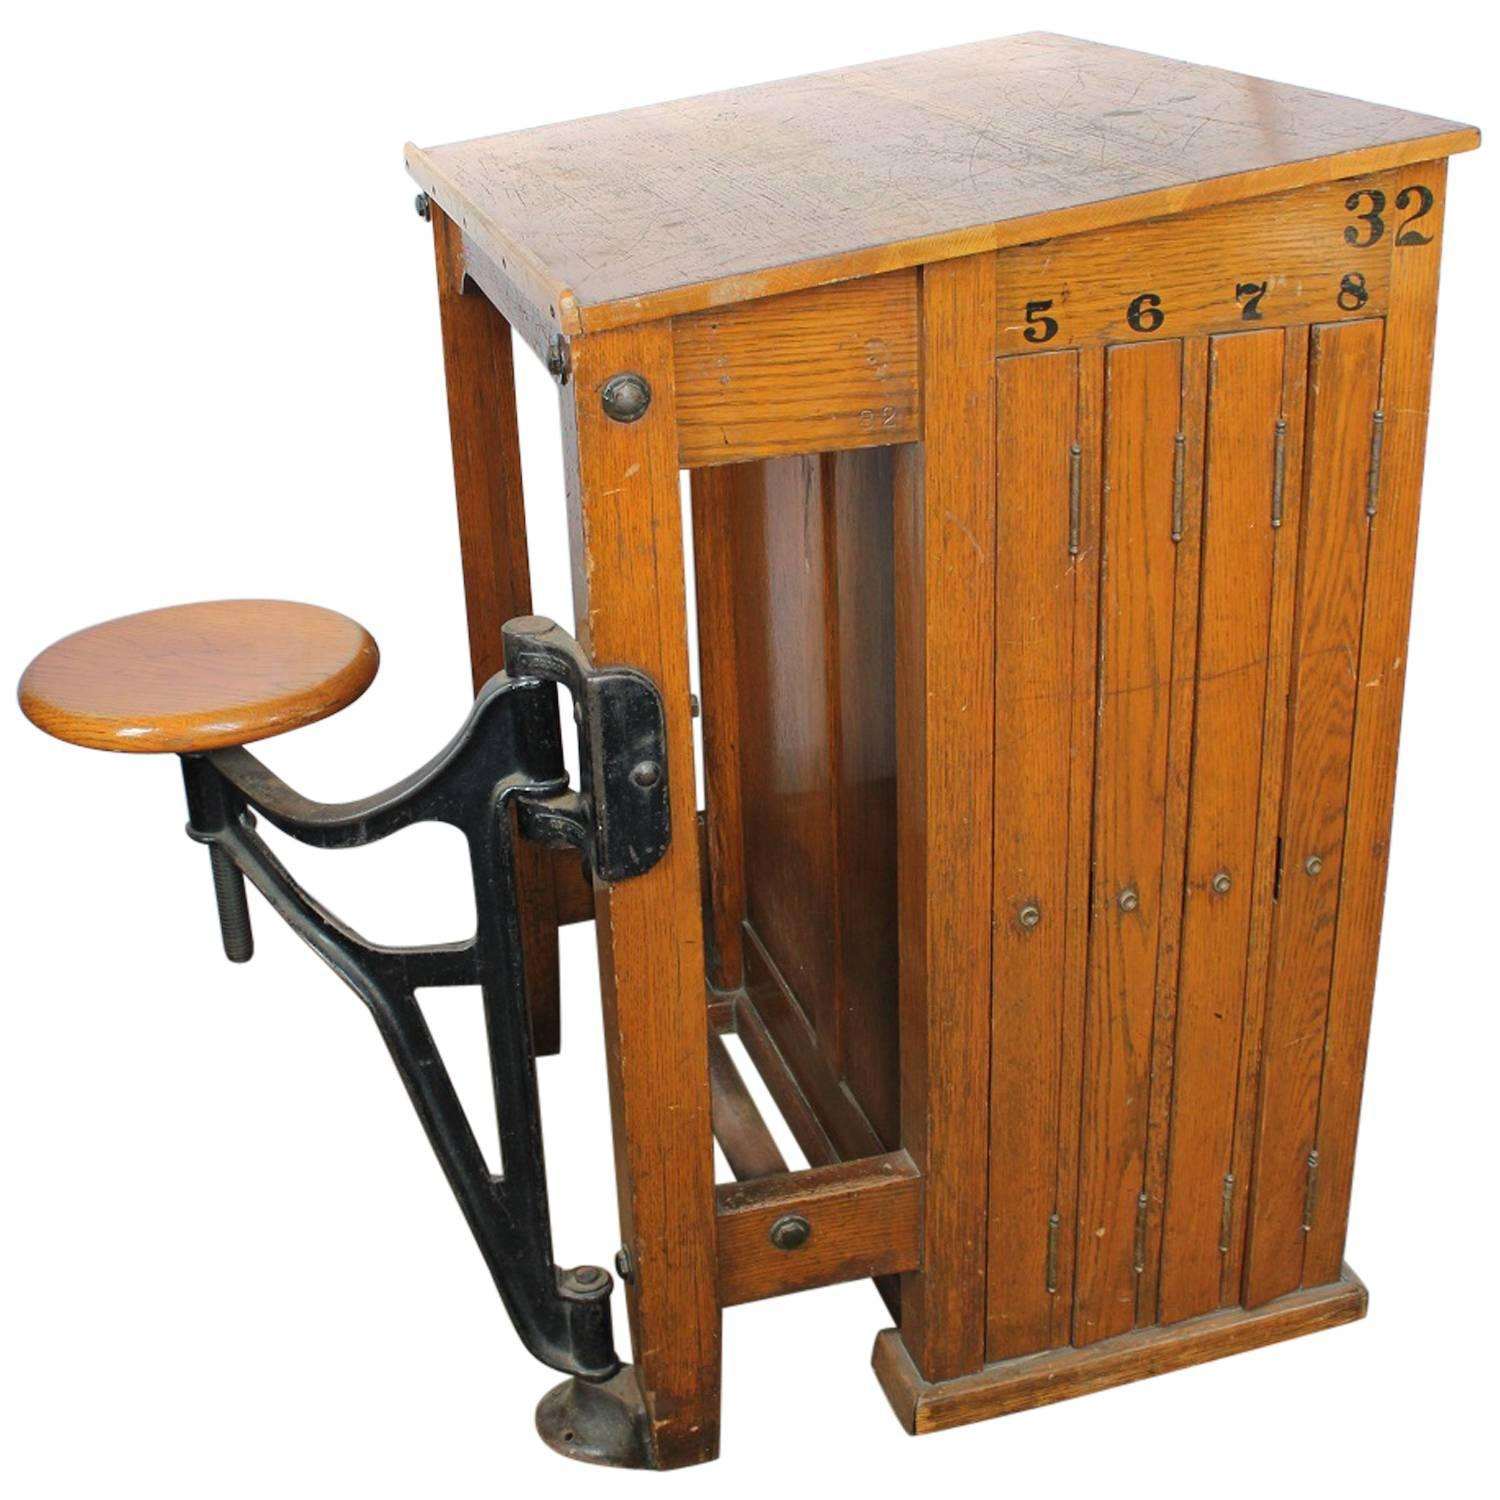 Antique American Drafting Table With Swing Out Seat For